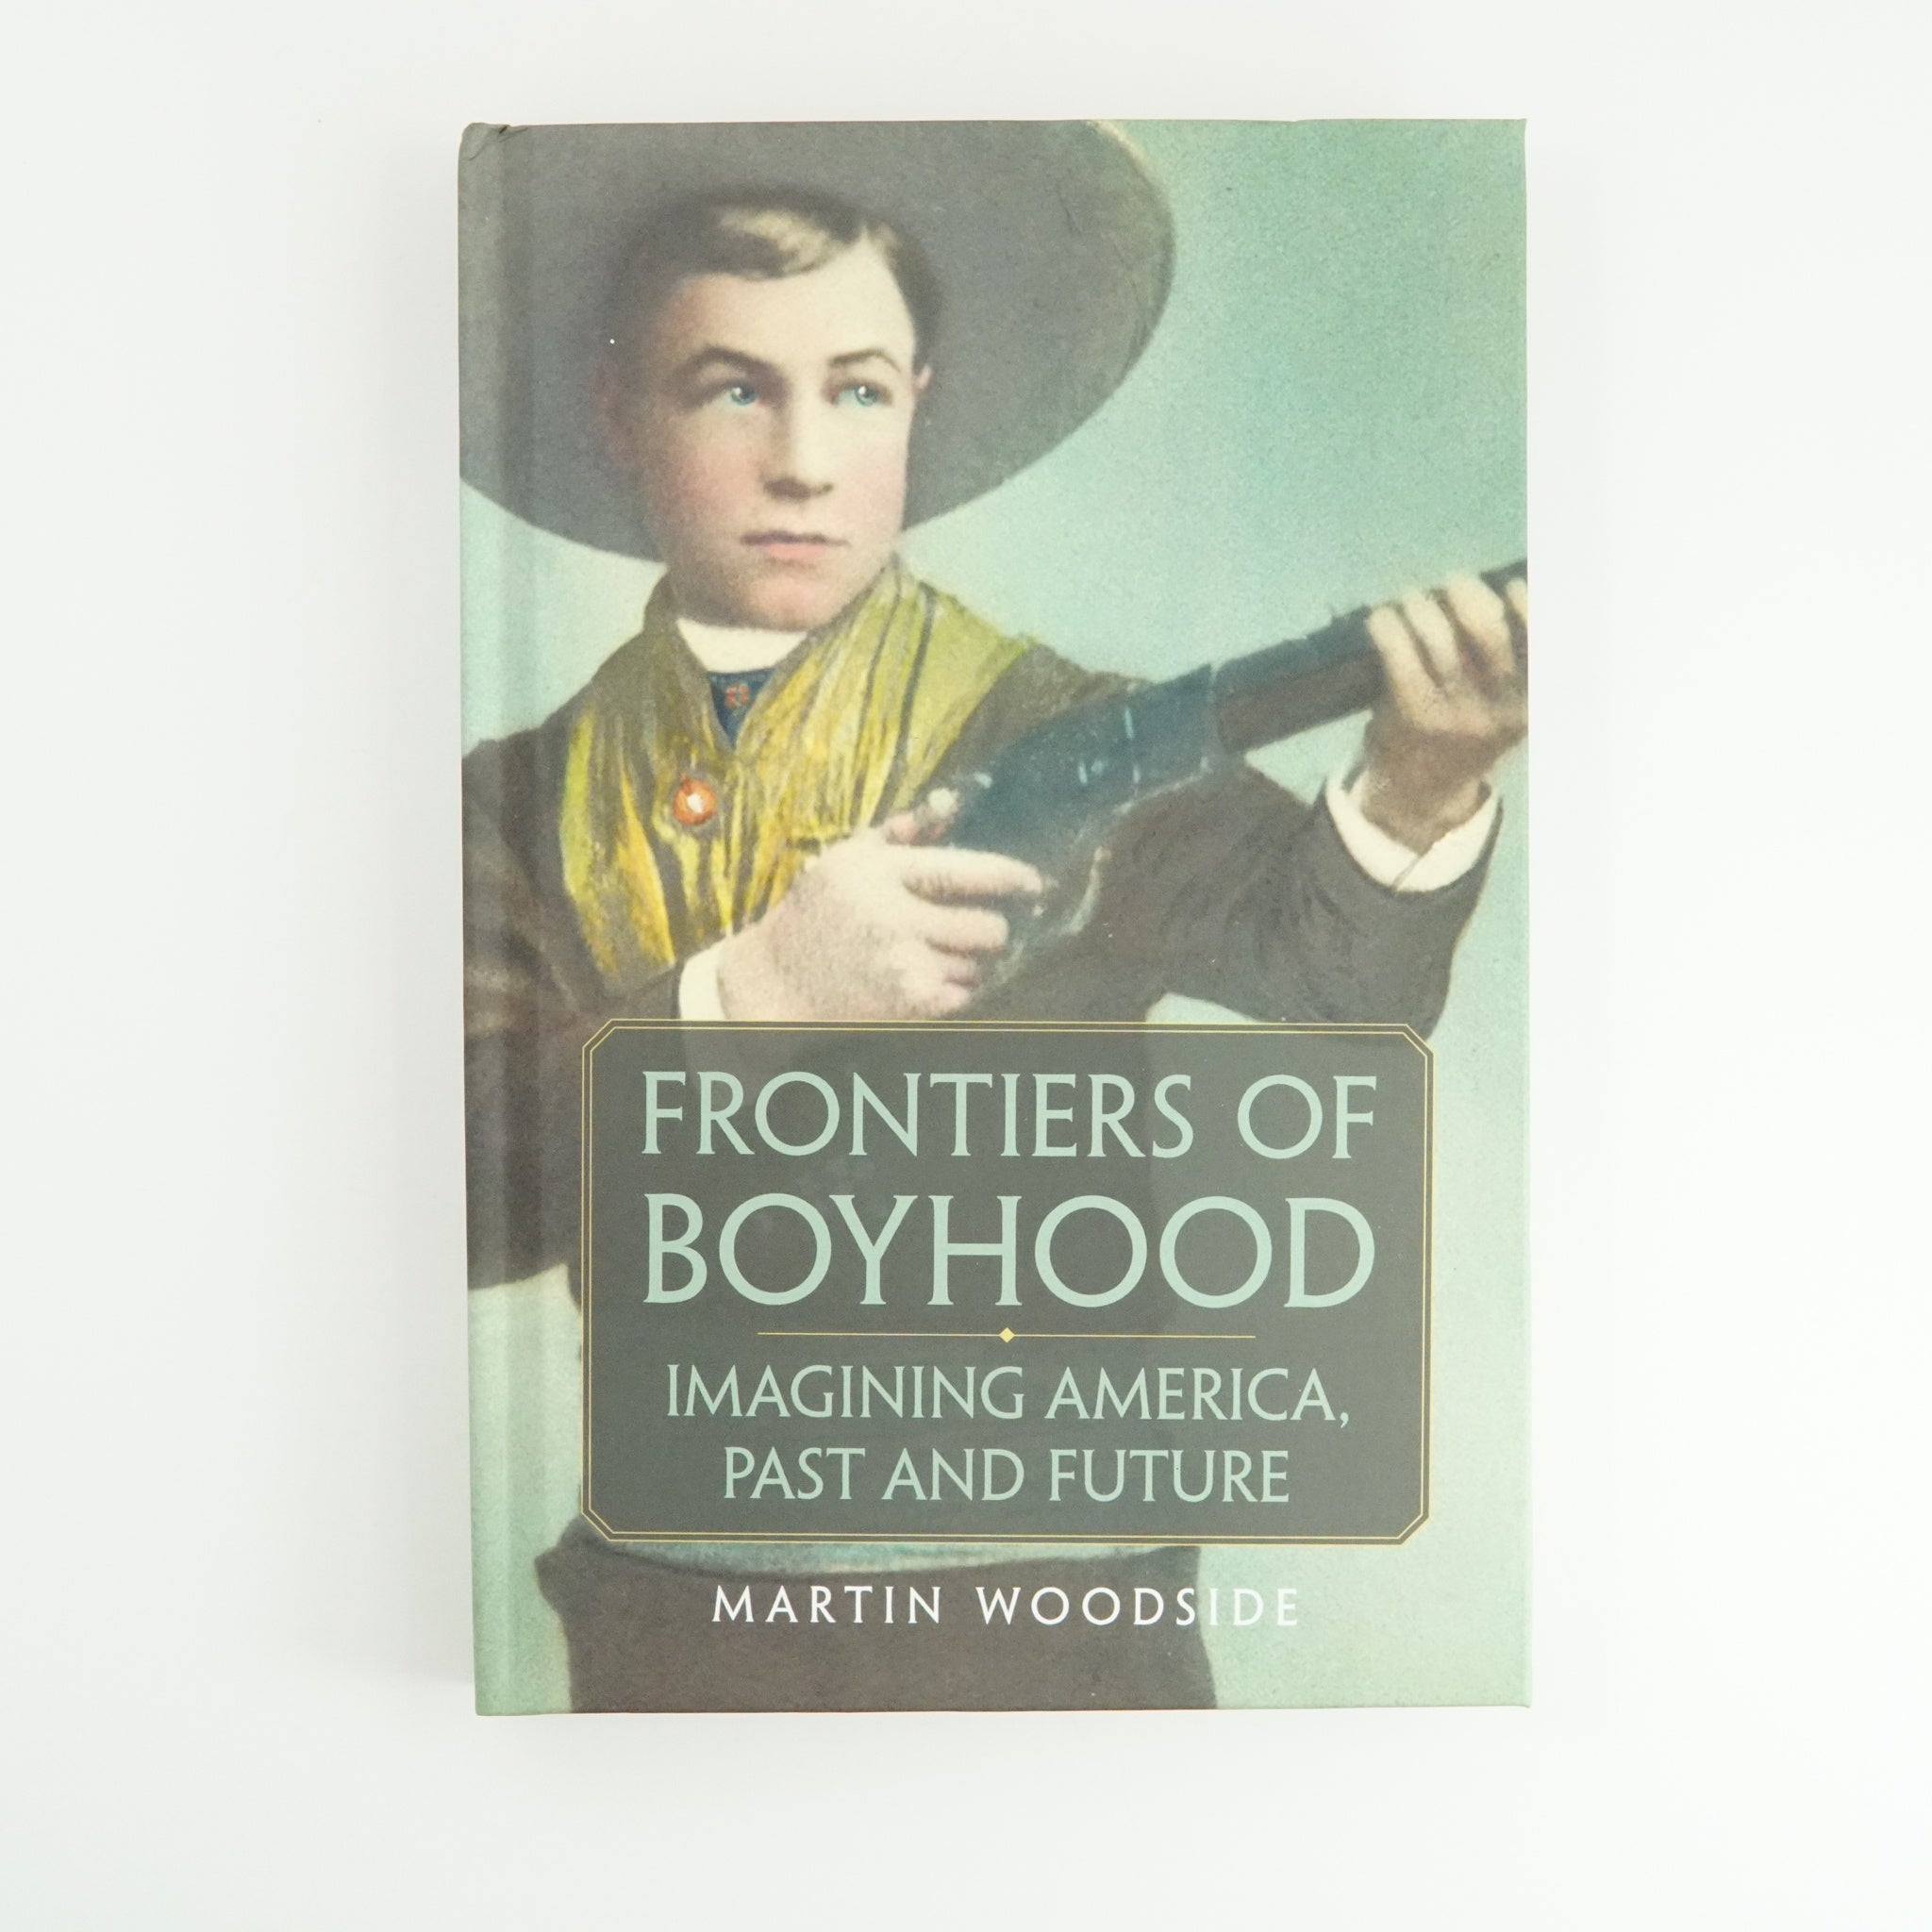 BK 1 FRONTIERS OF BOYHOOD